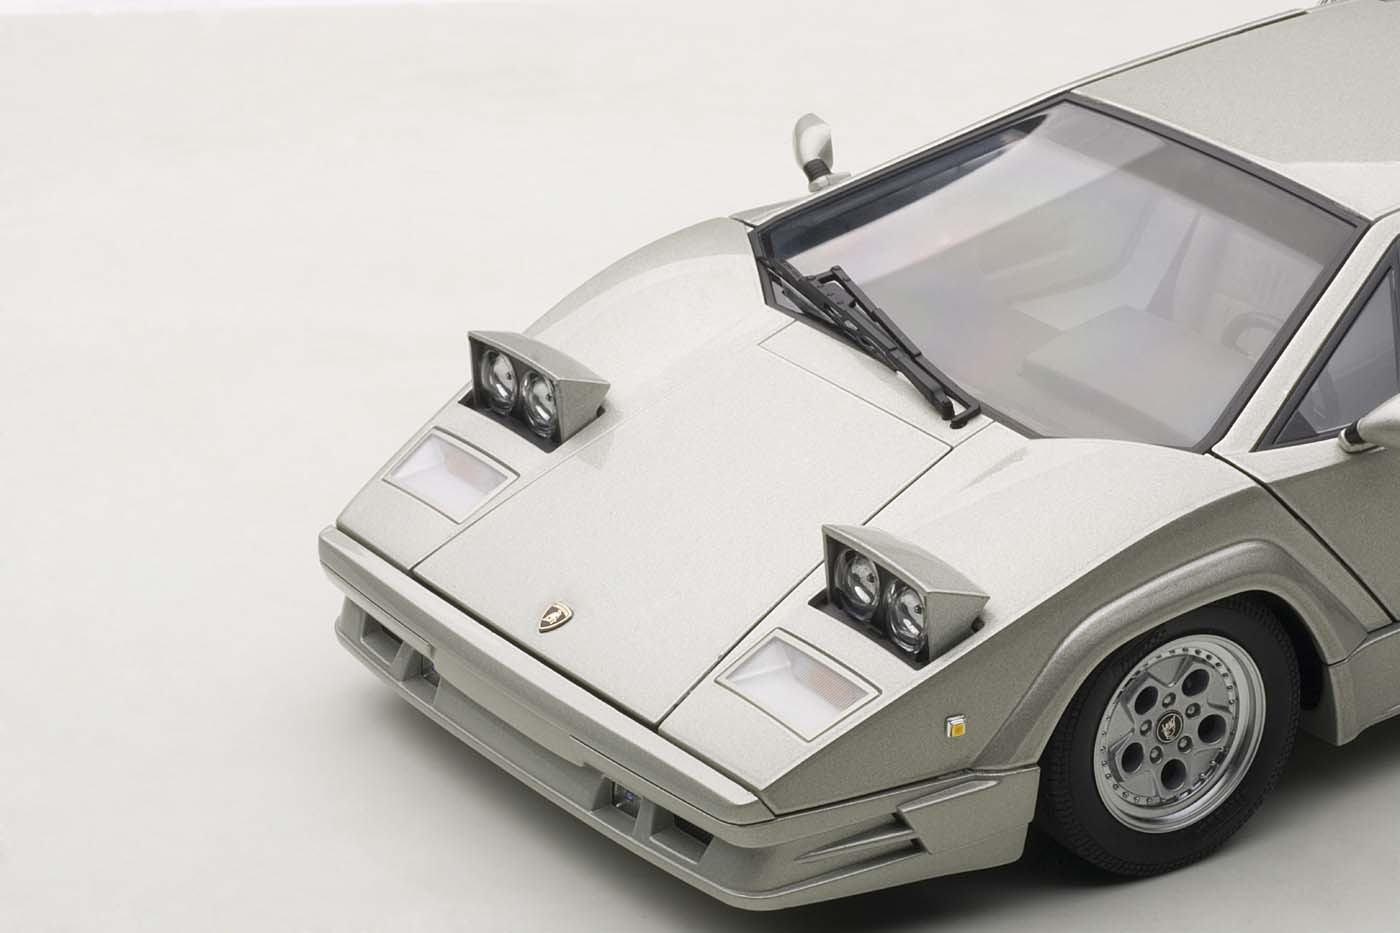 Autoart Highly Detailed Die Cast Model Last 25th Anniversary